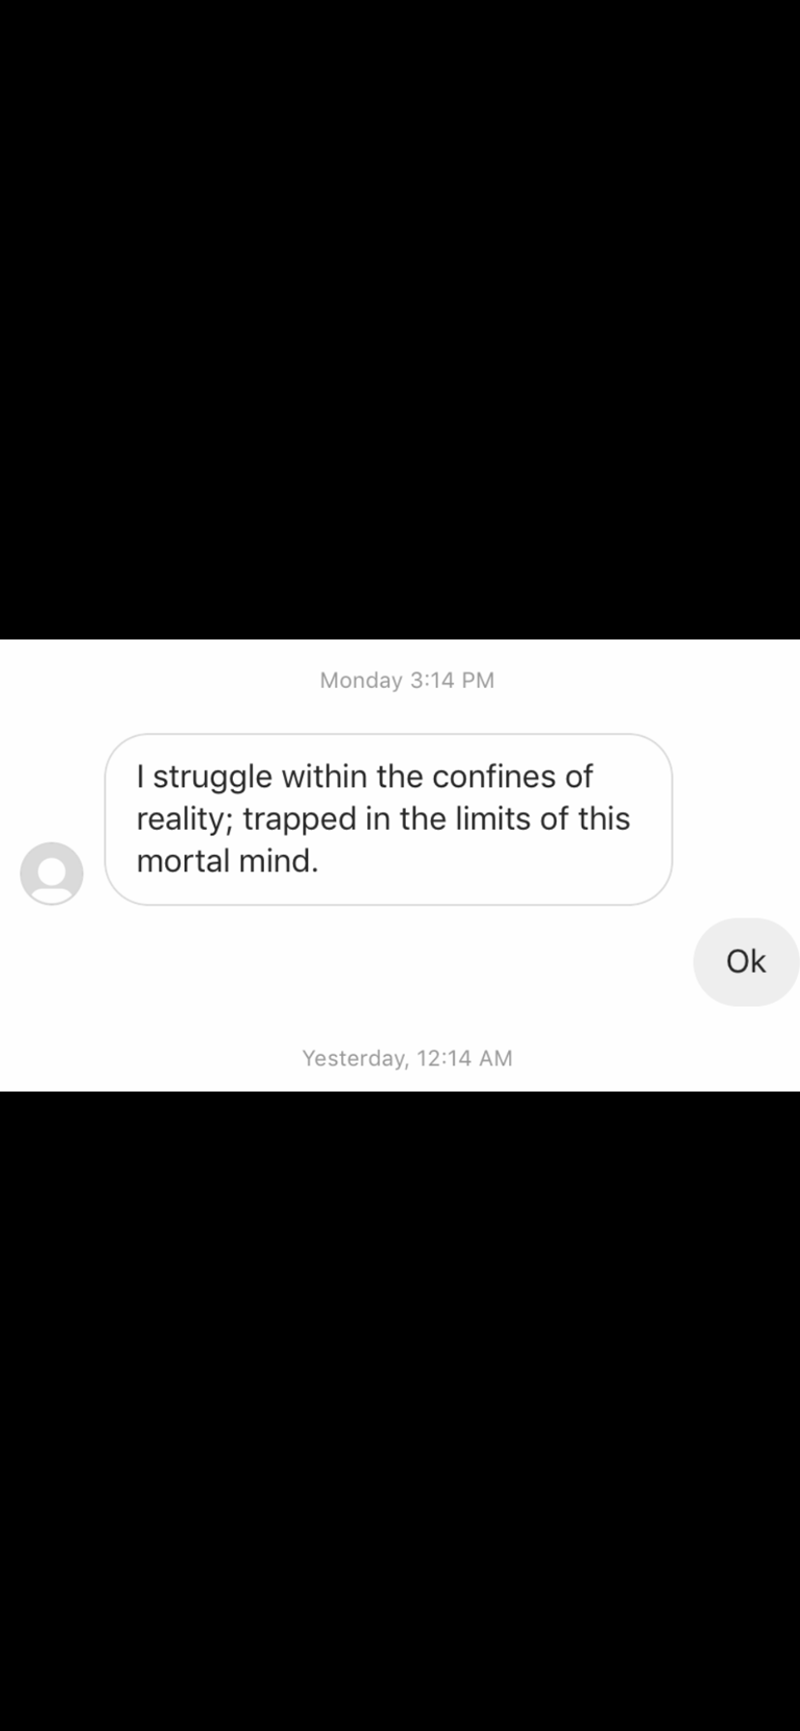 Text - Monday 3:14 PM I struggle within the confines of reality; trapped in the limits of this mortal mind. Ok Yesterday, 12:14 AM